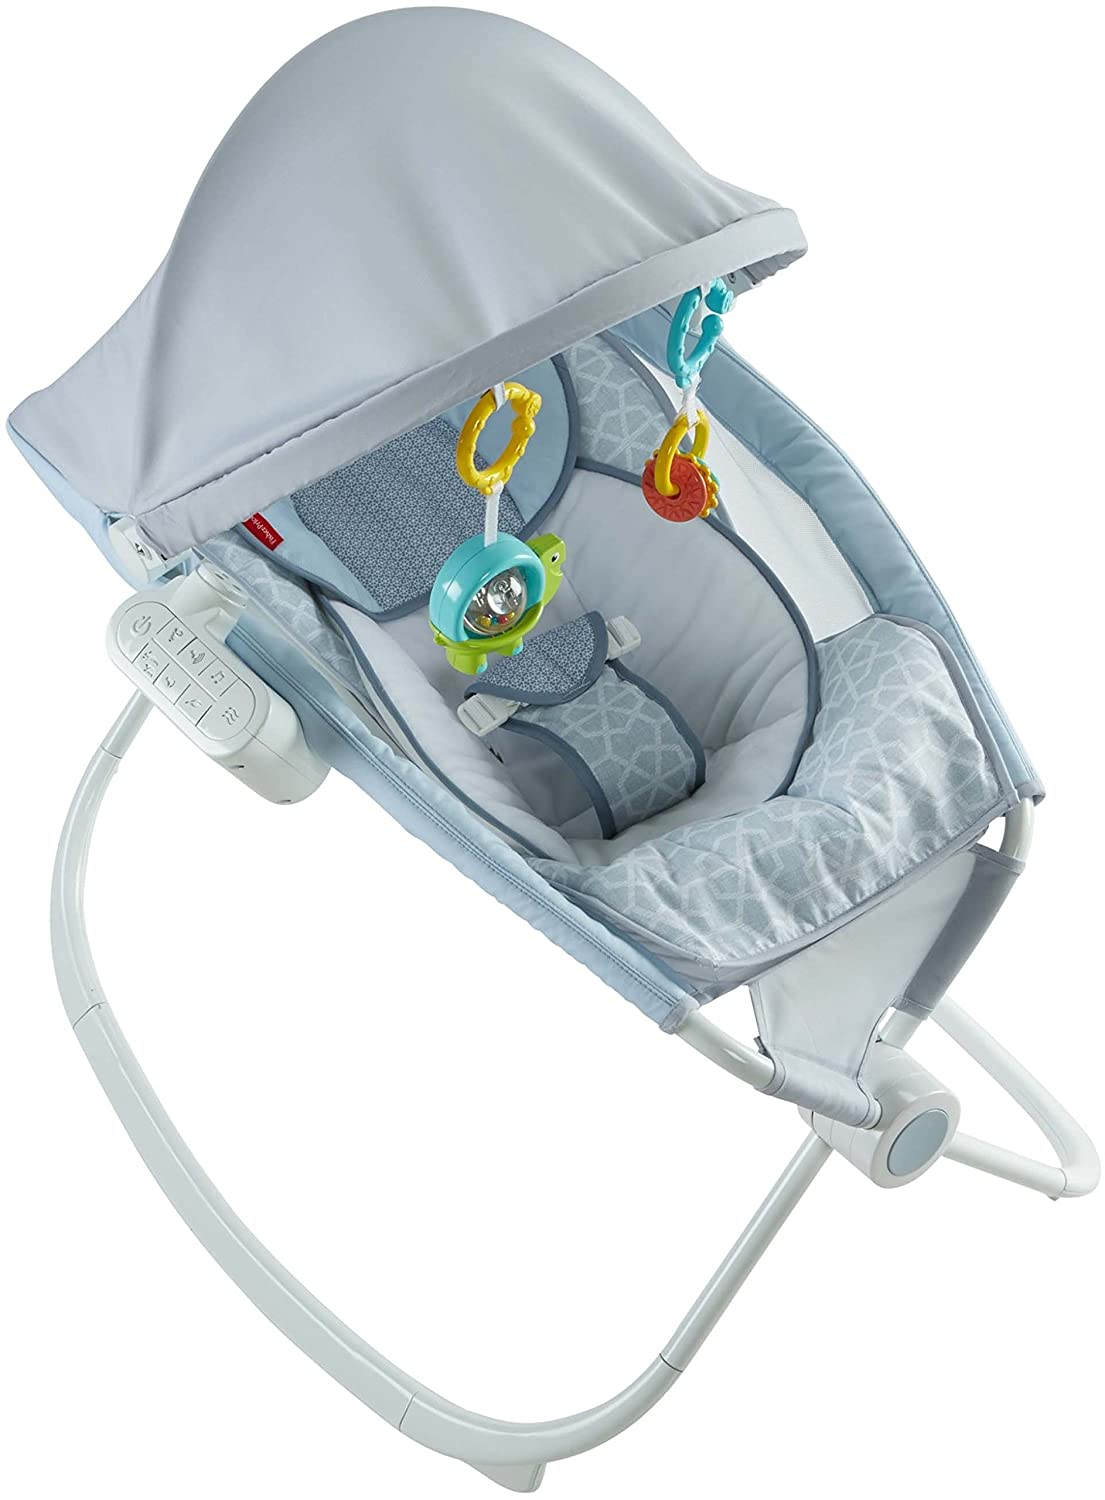 Fisher-Price Premium Auto Rock 'n Play Soothing Seat with SmartConnect Fisher-Price Baby DPV51